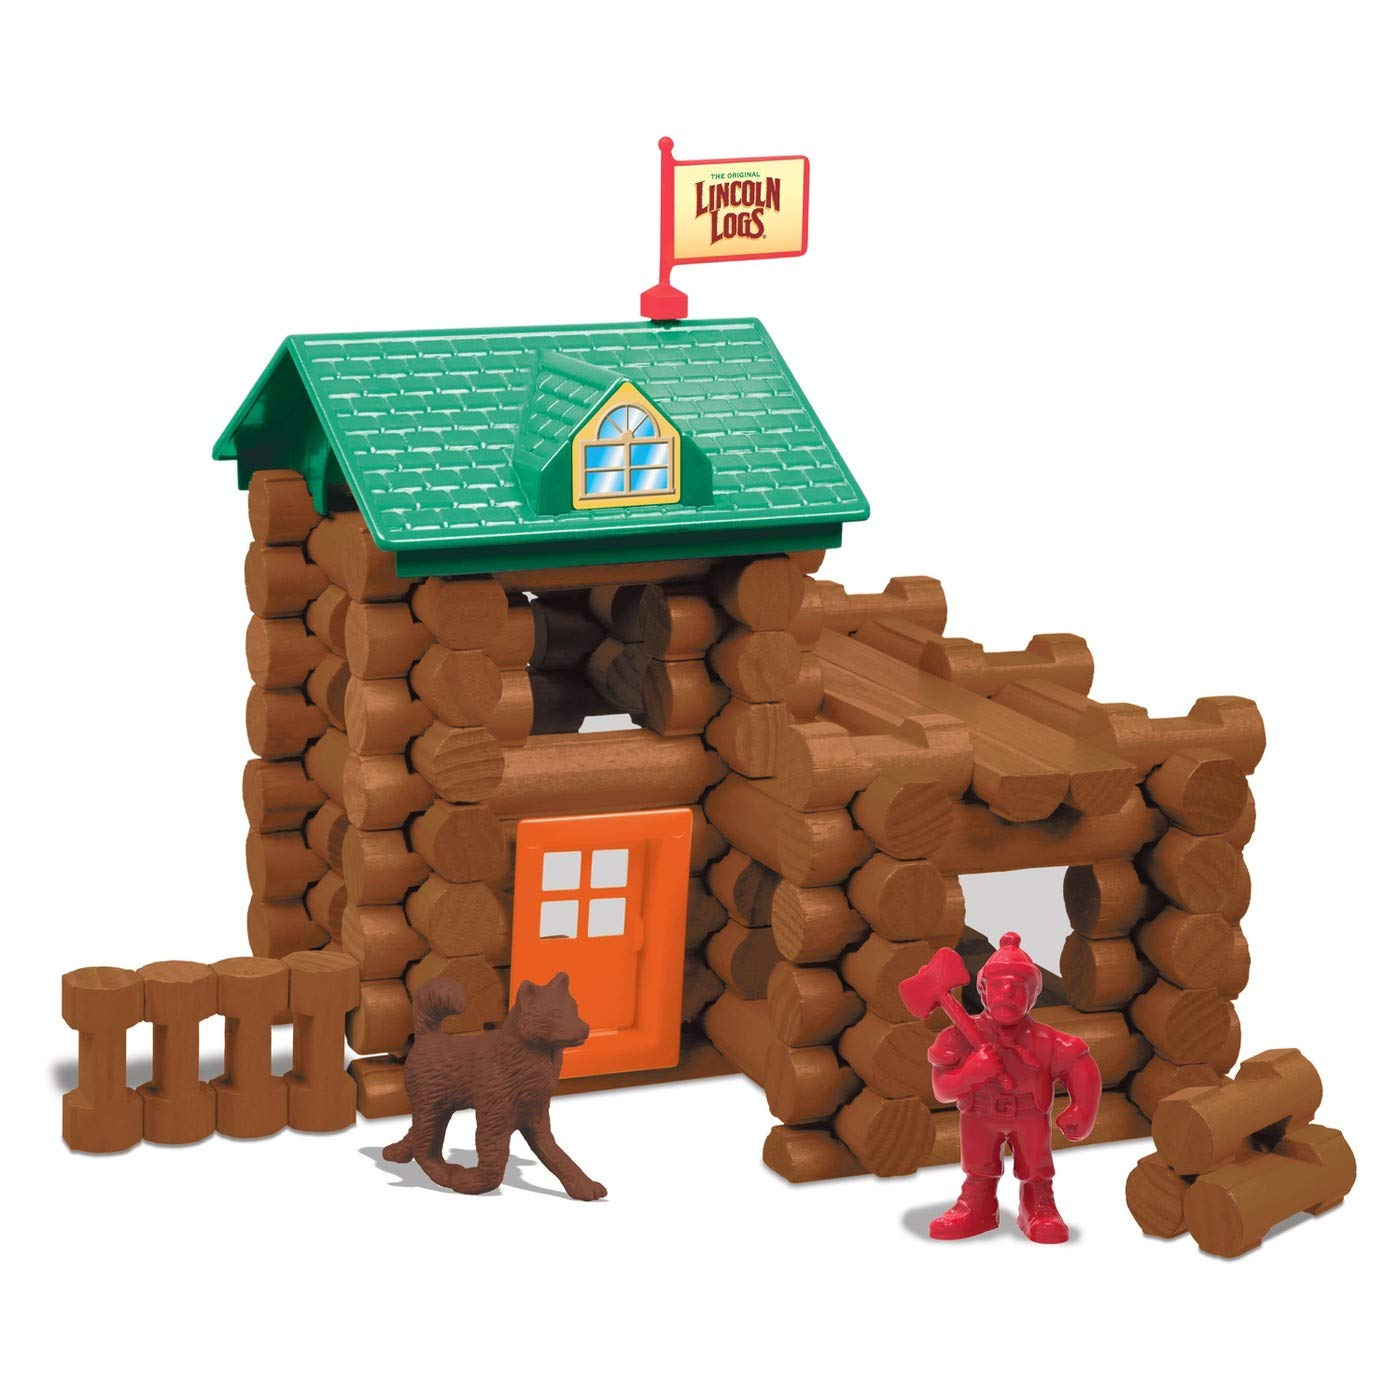 Wooden logs toys clipart jpg freeuse Amazon.com: Lincoln Logs Fort Red Pine 83 pcs: Toys & Games jpg freeuse